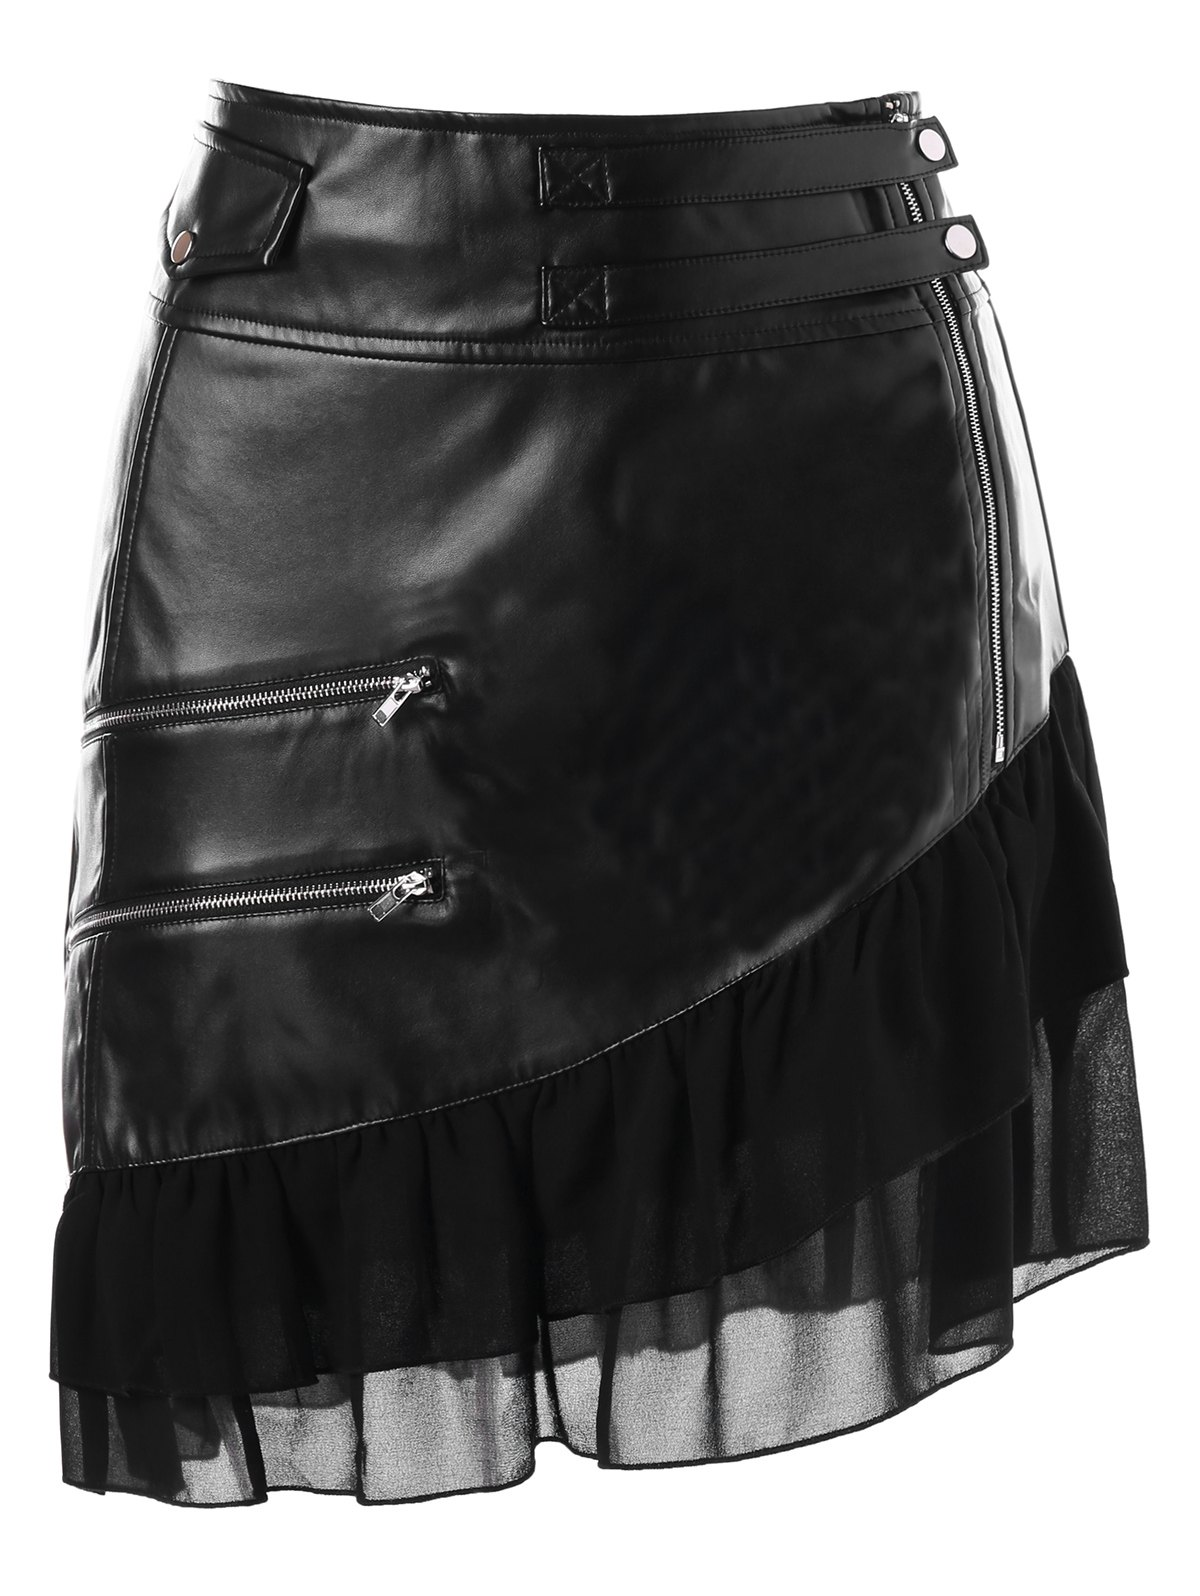 Faux Leather Zipper Flounce Panel Skirt - BLACK 2XL